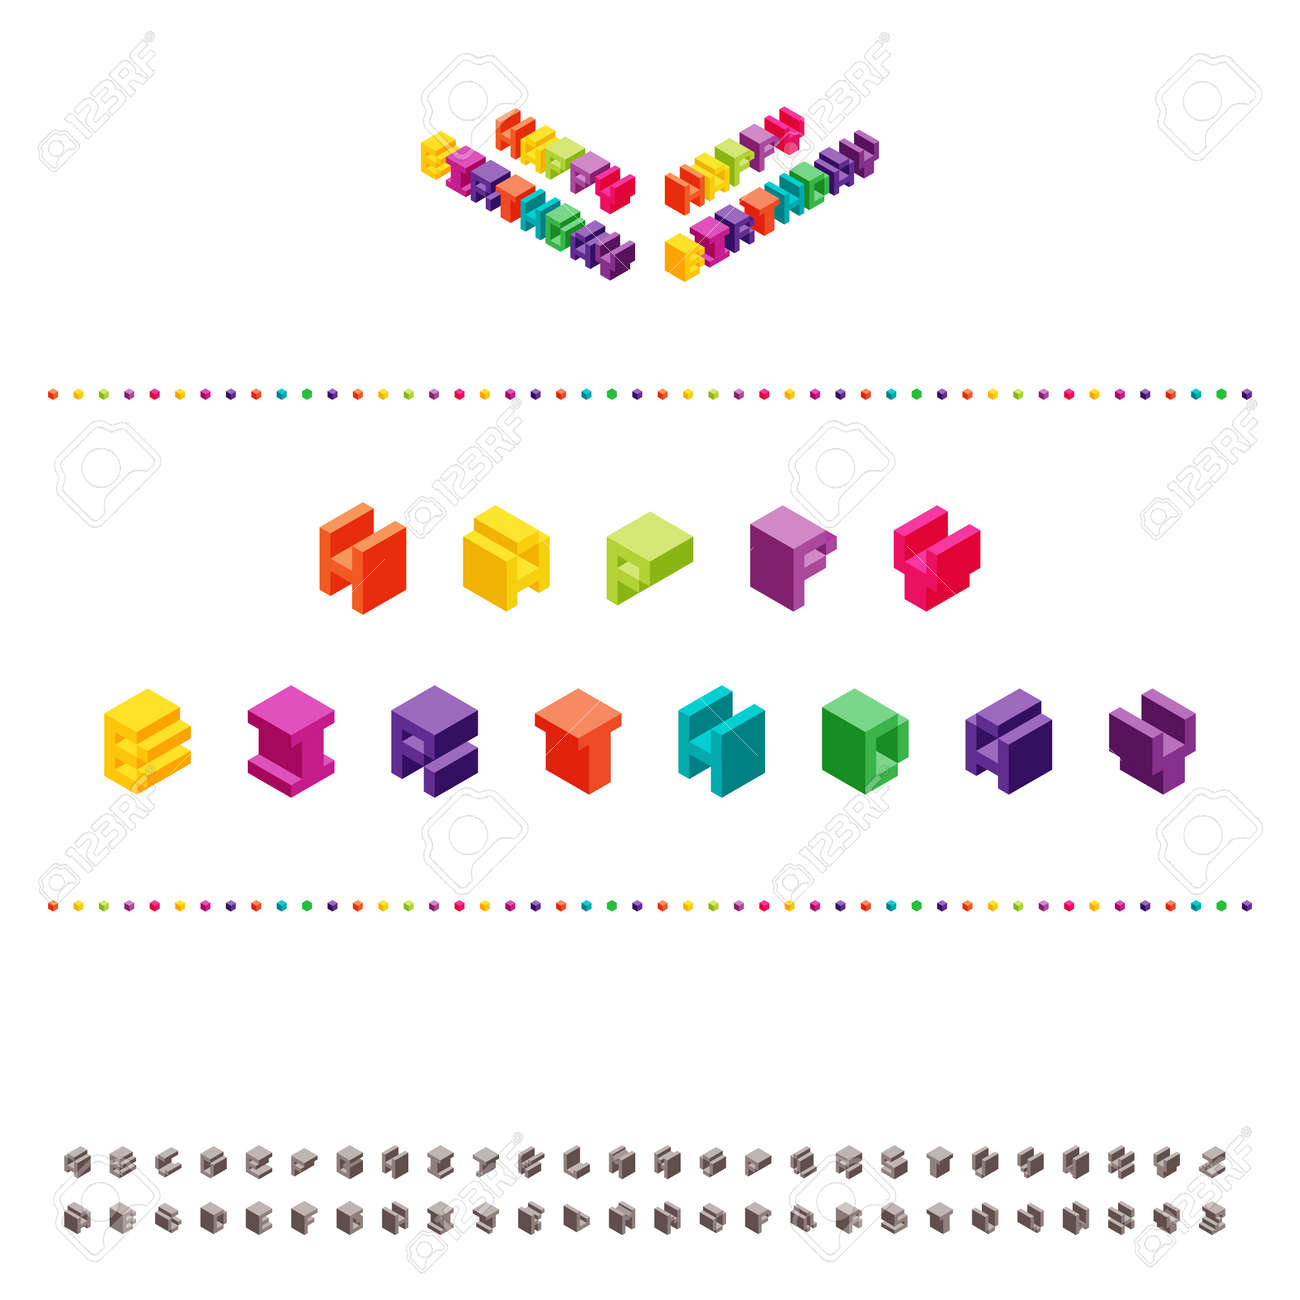 Isometric Pixel Illustration Of Happy Birthday Text Along With